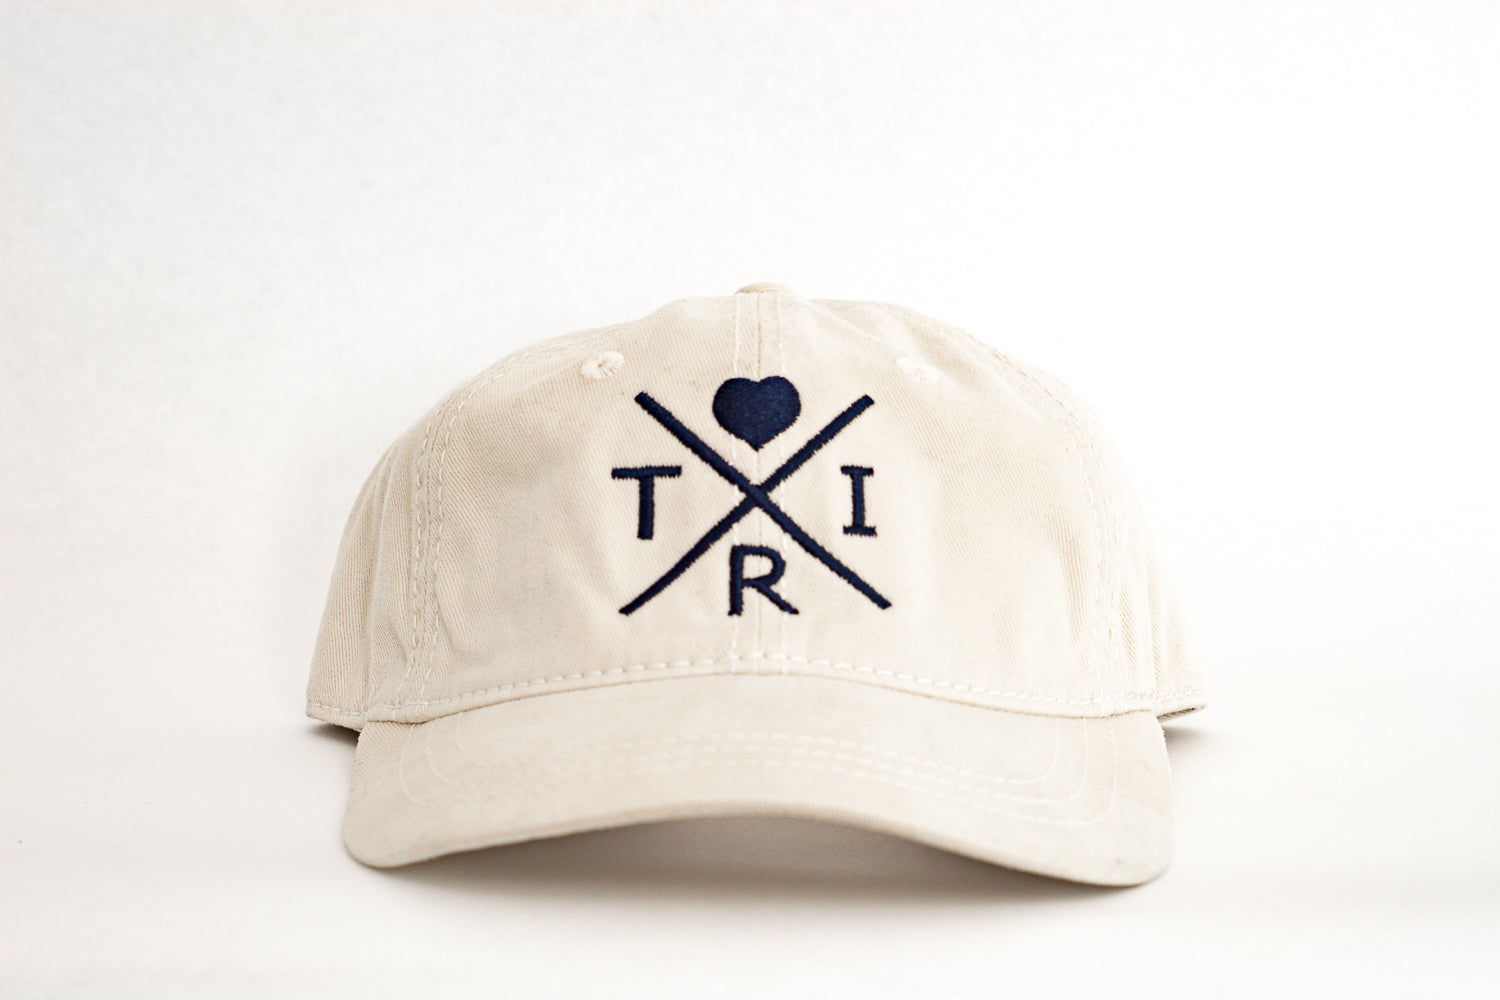 X Heart soft hat in stone with navy